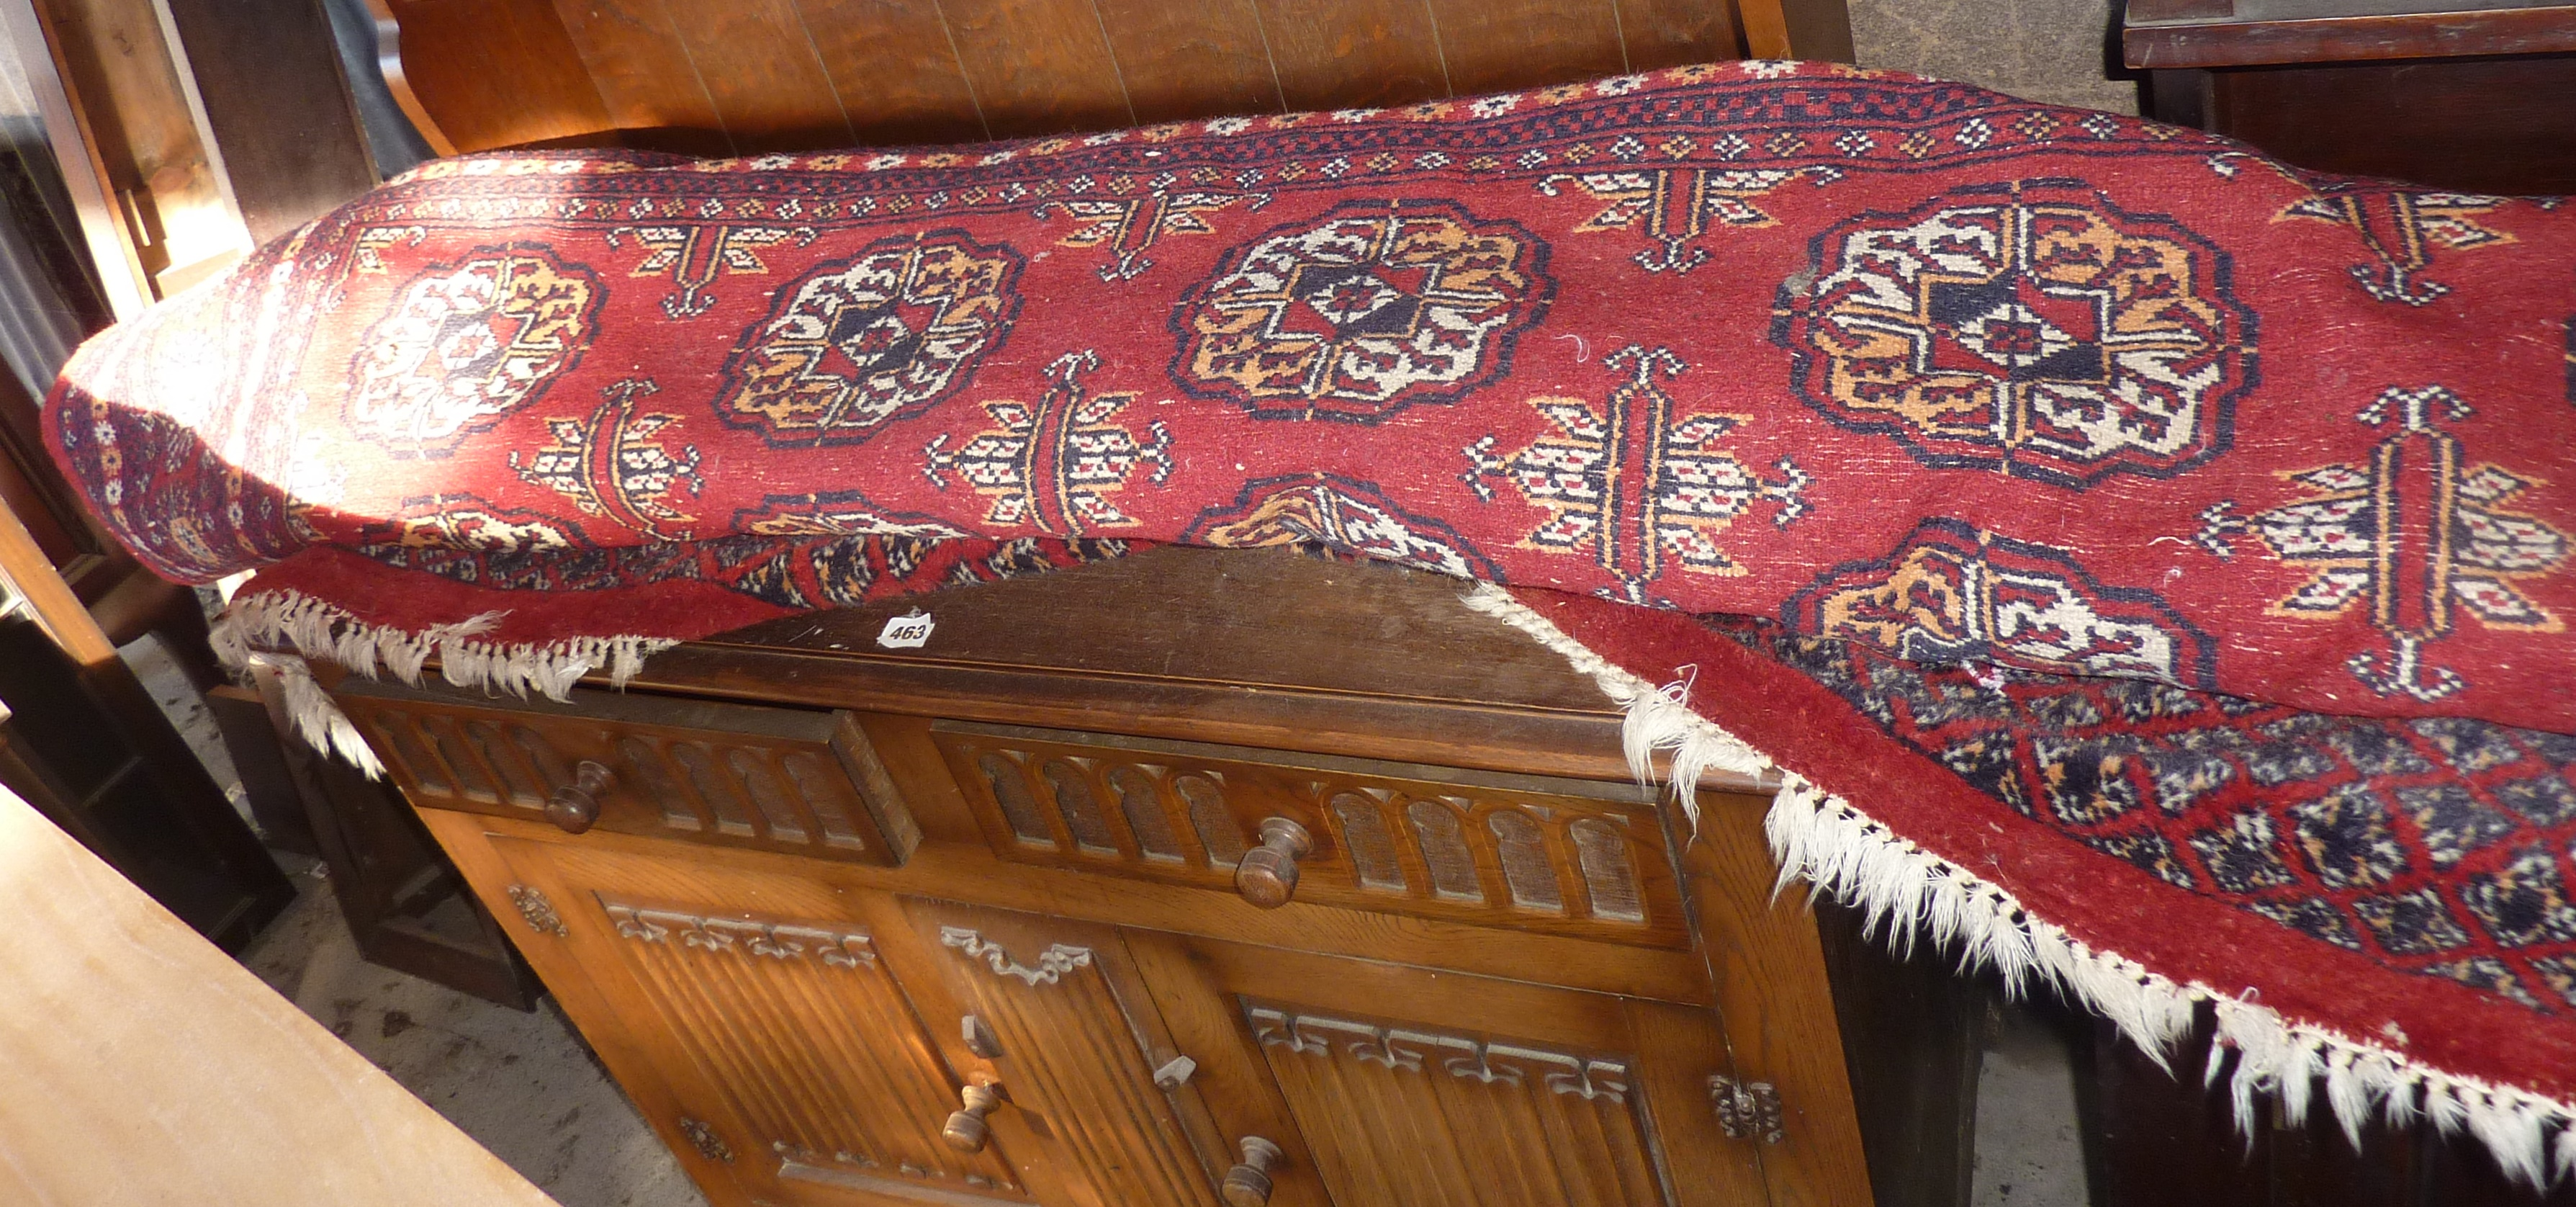 Large Persian style carpet/rug on red ground, approx. 8' x 12'